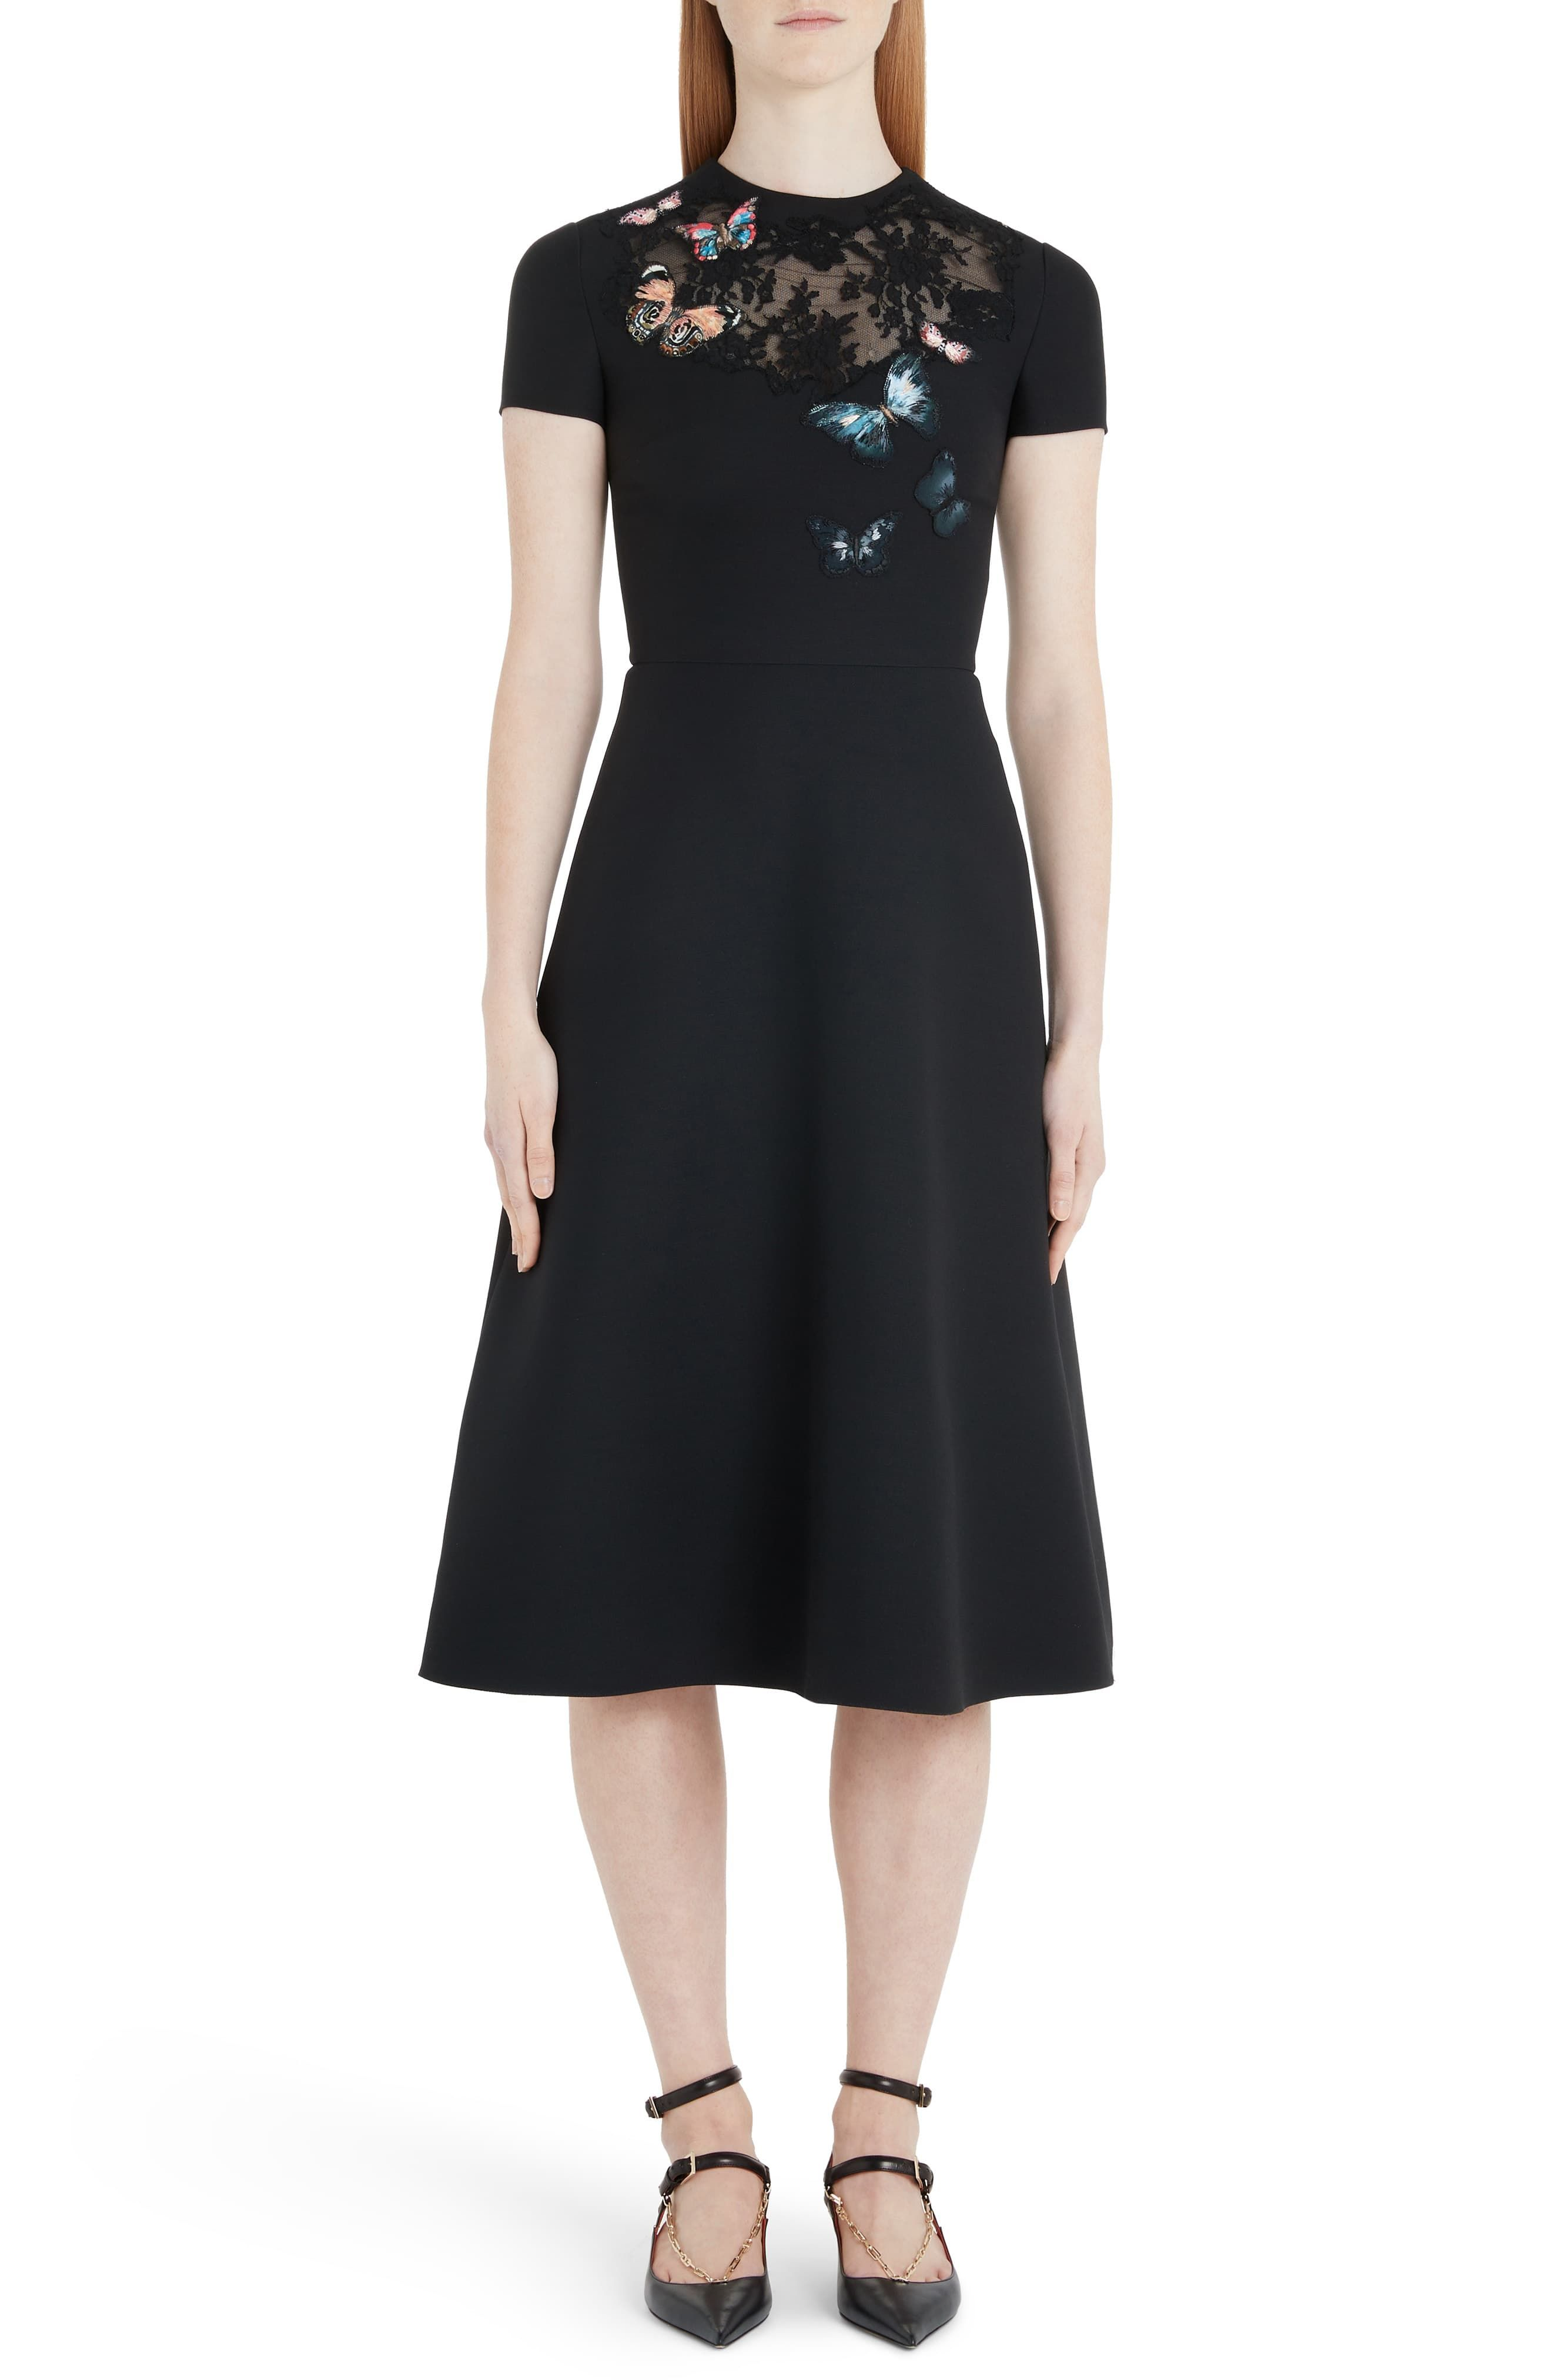 Women S Valentino Butterfly Embroidered Lace Panel Midi Dress Size 6 Us 42 It Black Fashion Clothes Women Dresses Long Sleeve Cocktail Dress [ 4048 x 2640 Pixel ]